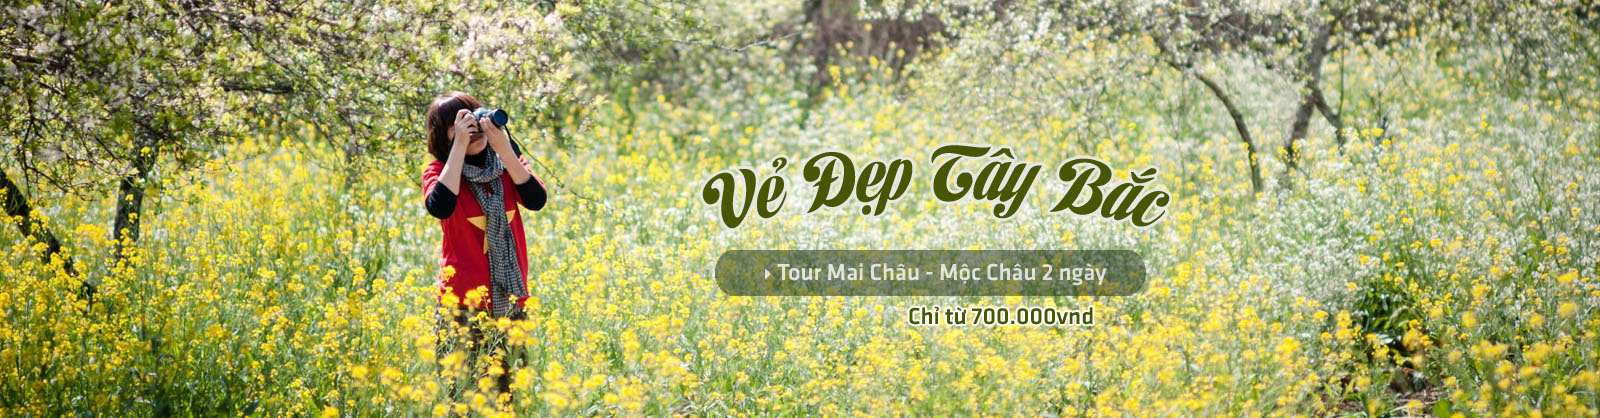 Mai Châu - Mộc Châu - Vẻ đẹp Tây Bắc